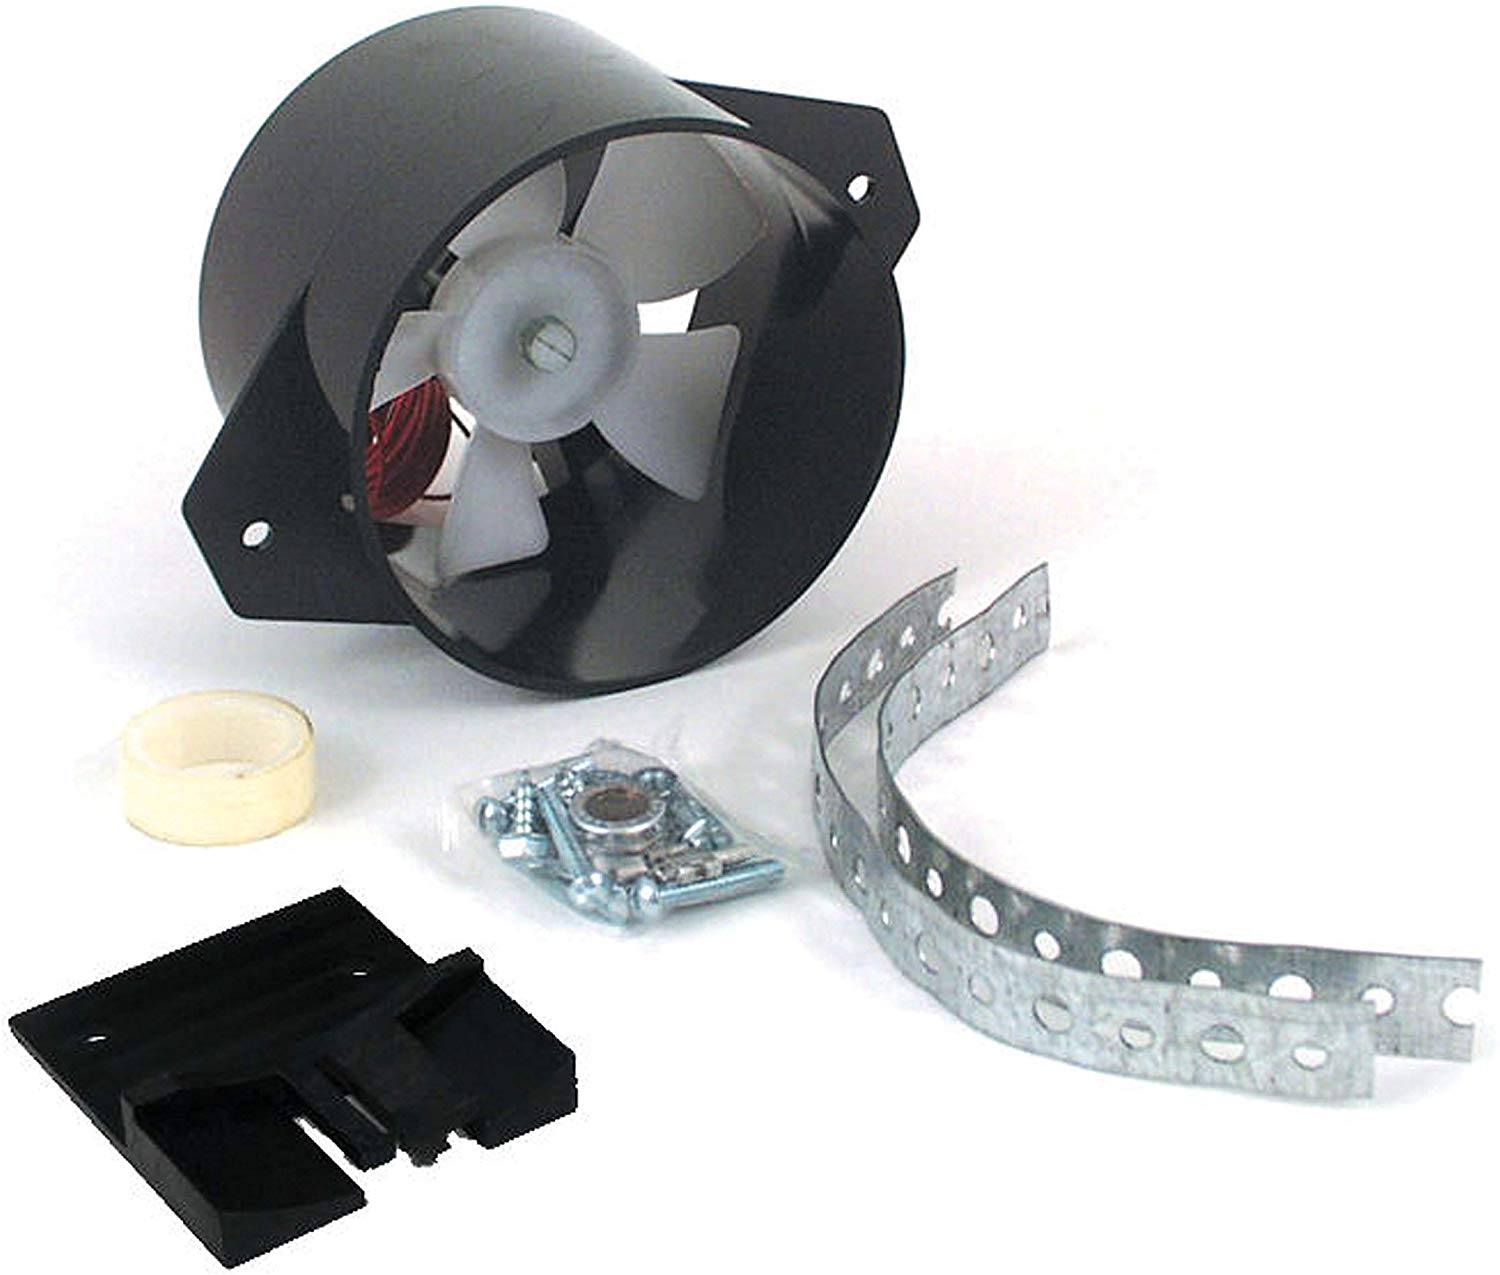 Valterra Black A10-2618VP FridgeCool Refrigerator Exhaust Fan for RV